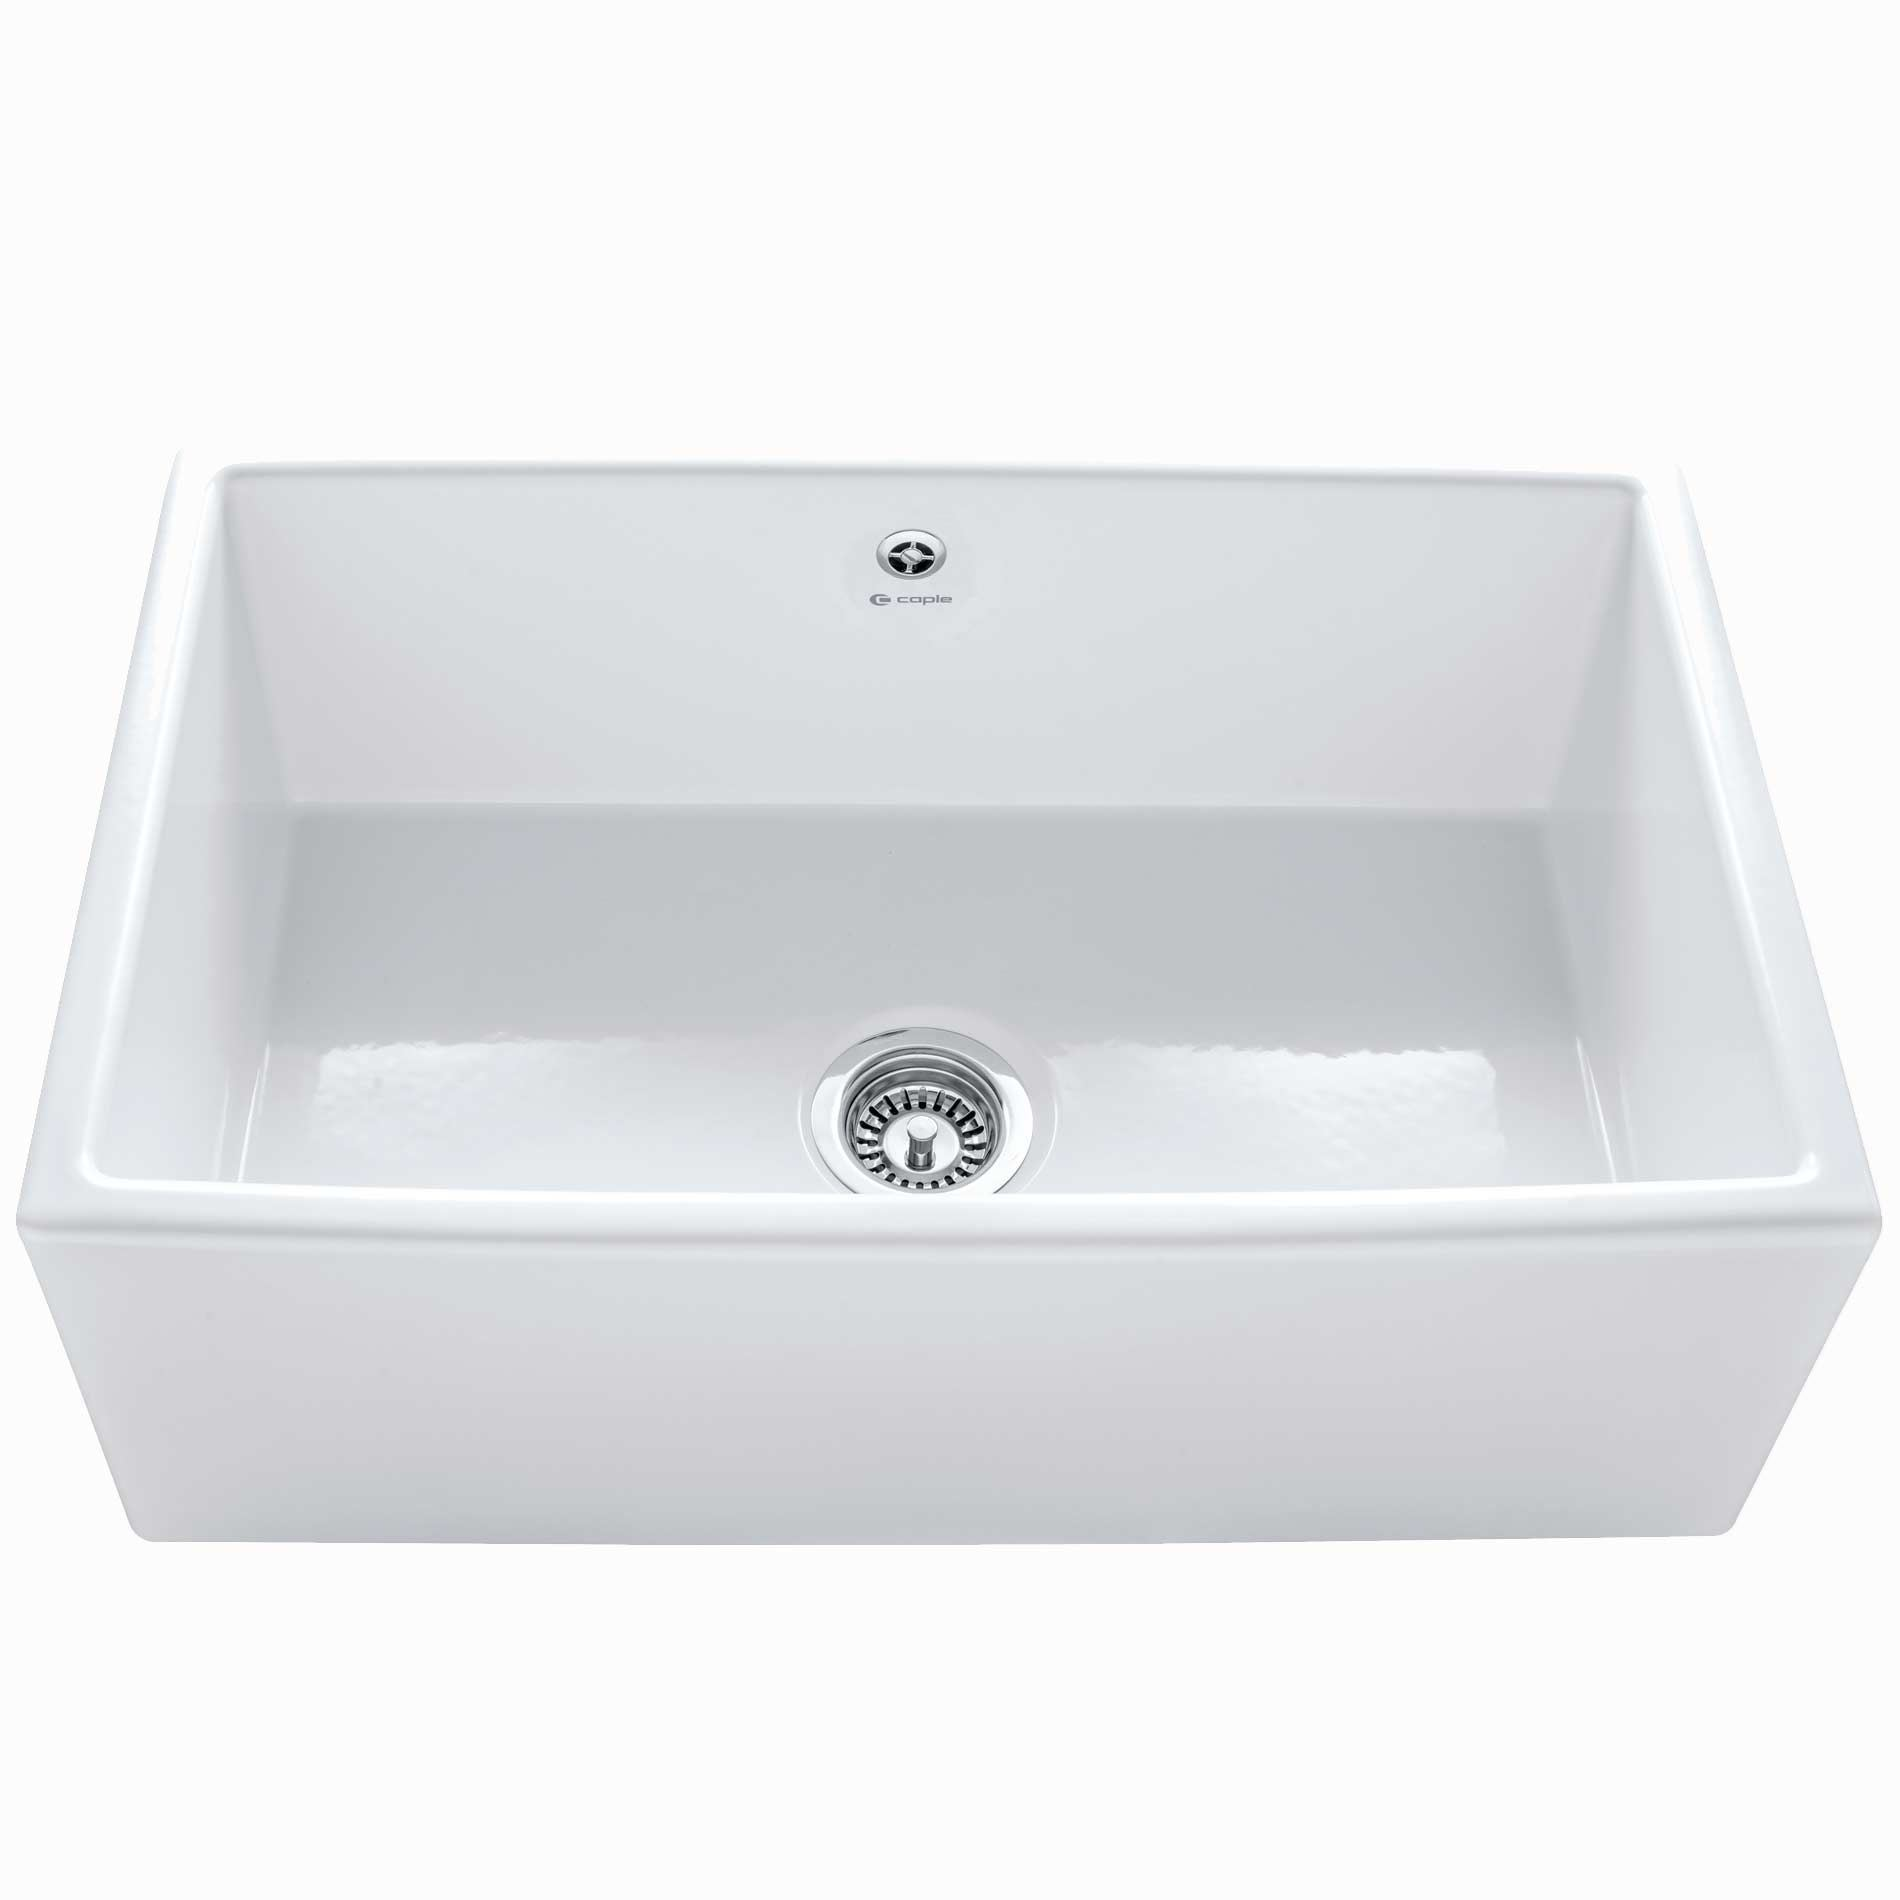 Farmhouse Ceramic Sink : Caple: Farmhouse 762 Ceramic Sink - Kitchen Sinks & Taps